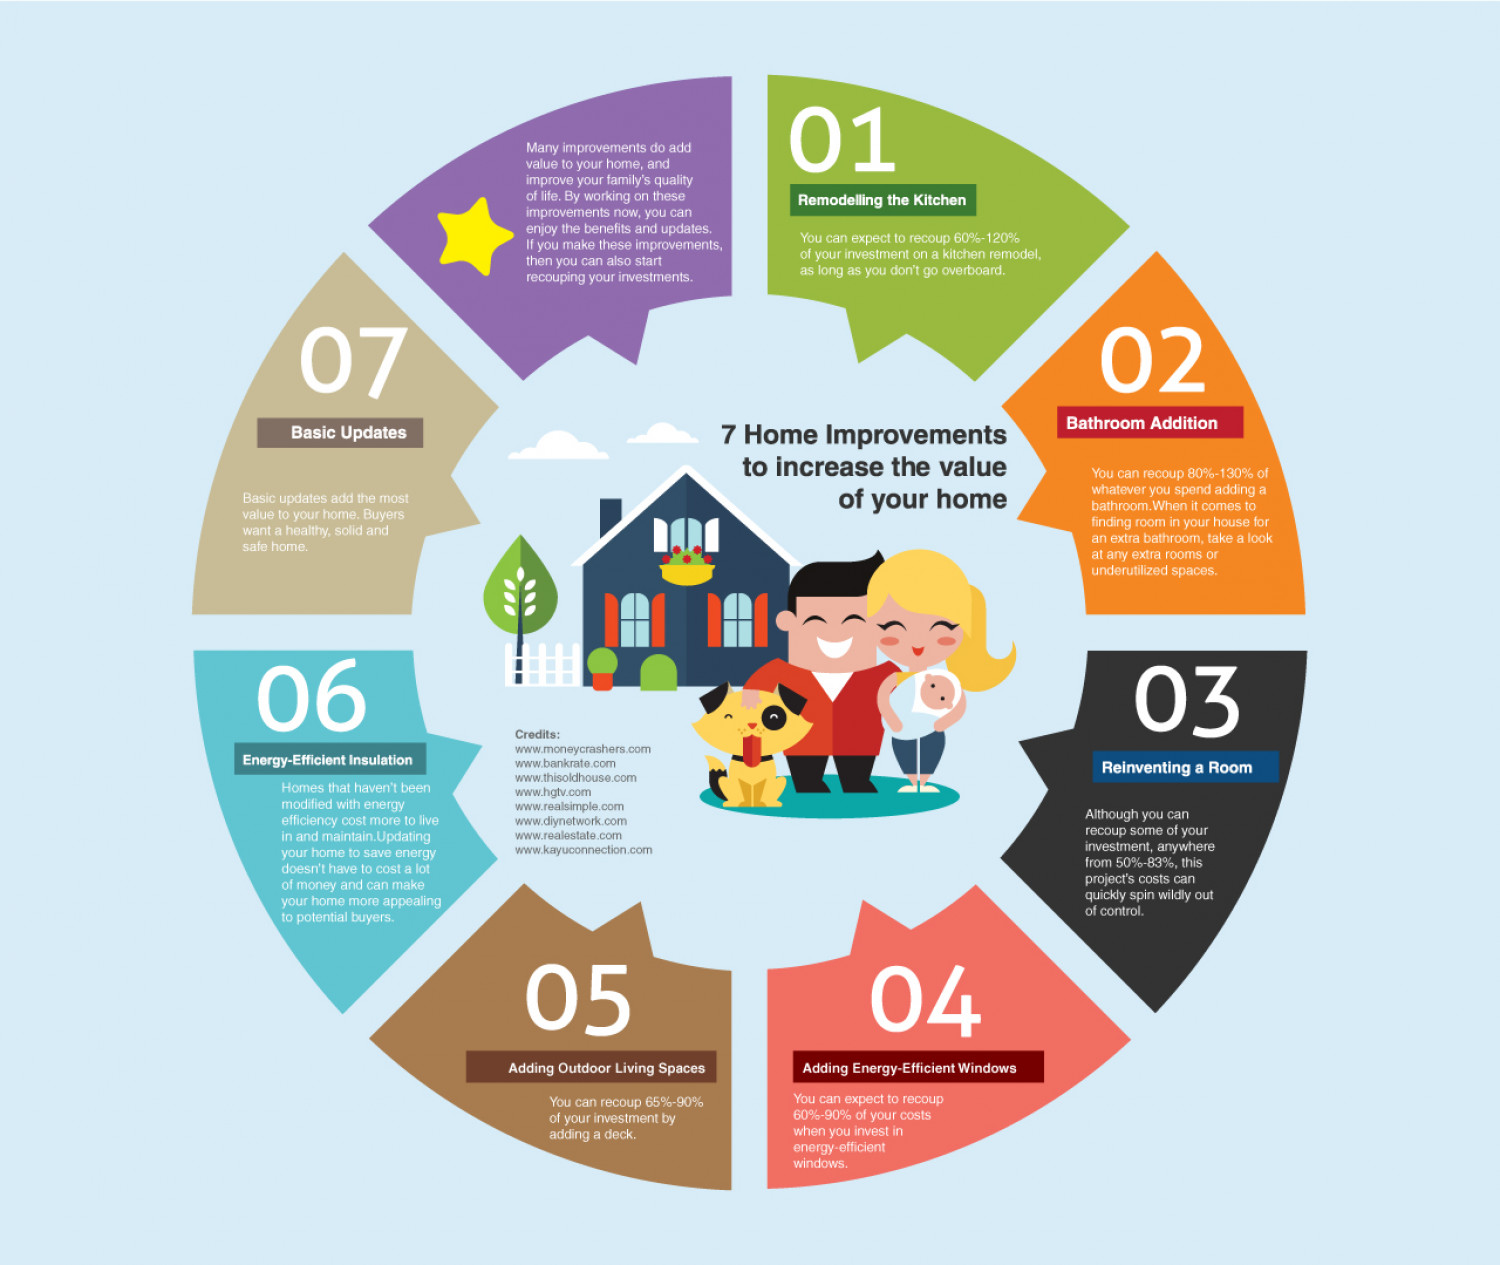 Home Improvement Remodeling Ideas To Increase Value Infographic